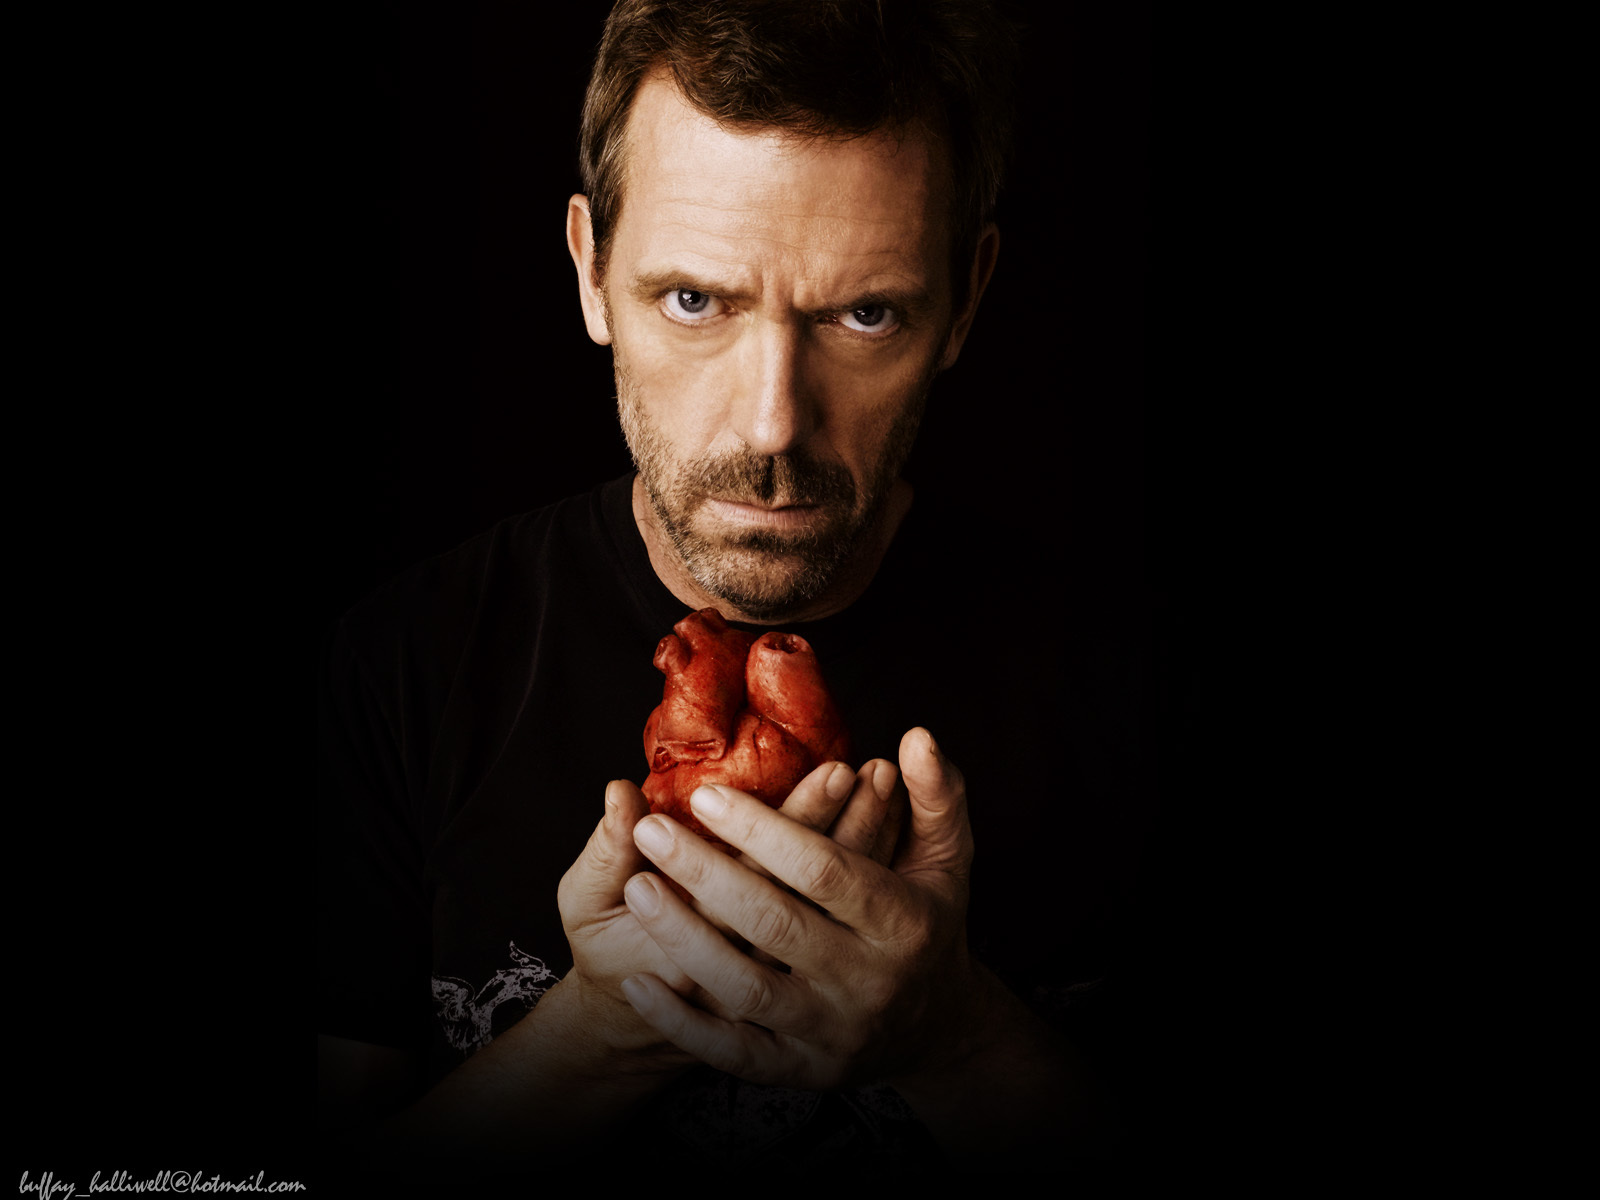 10076 download wallpaper Cinema, People, Actors, House M.d., Hugh Laurie screensavers and pictures for free